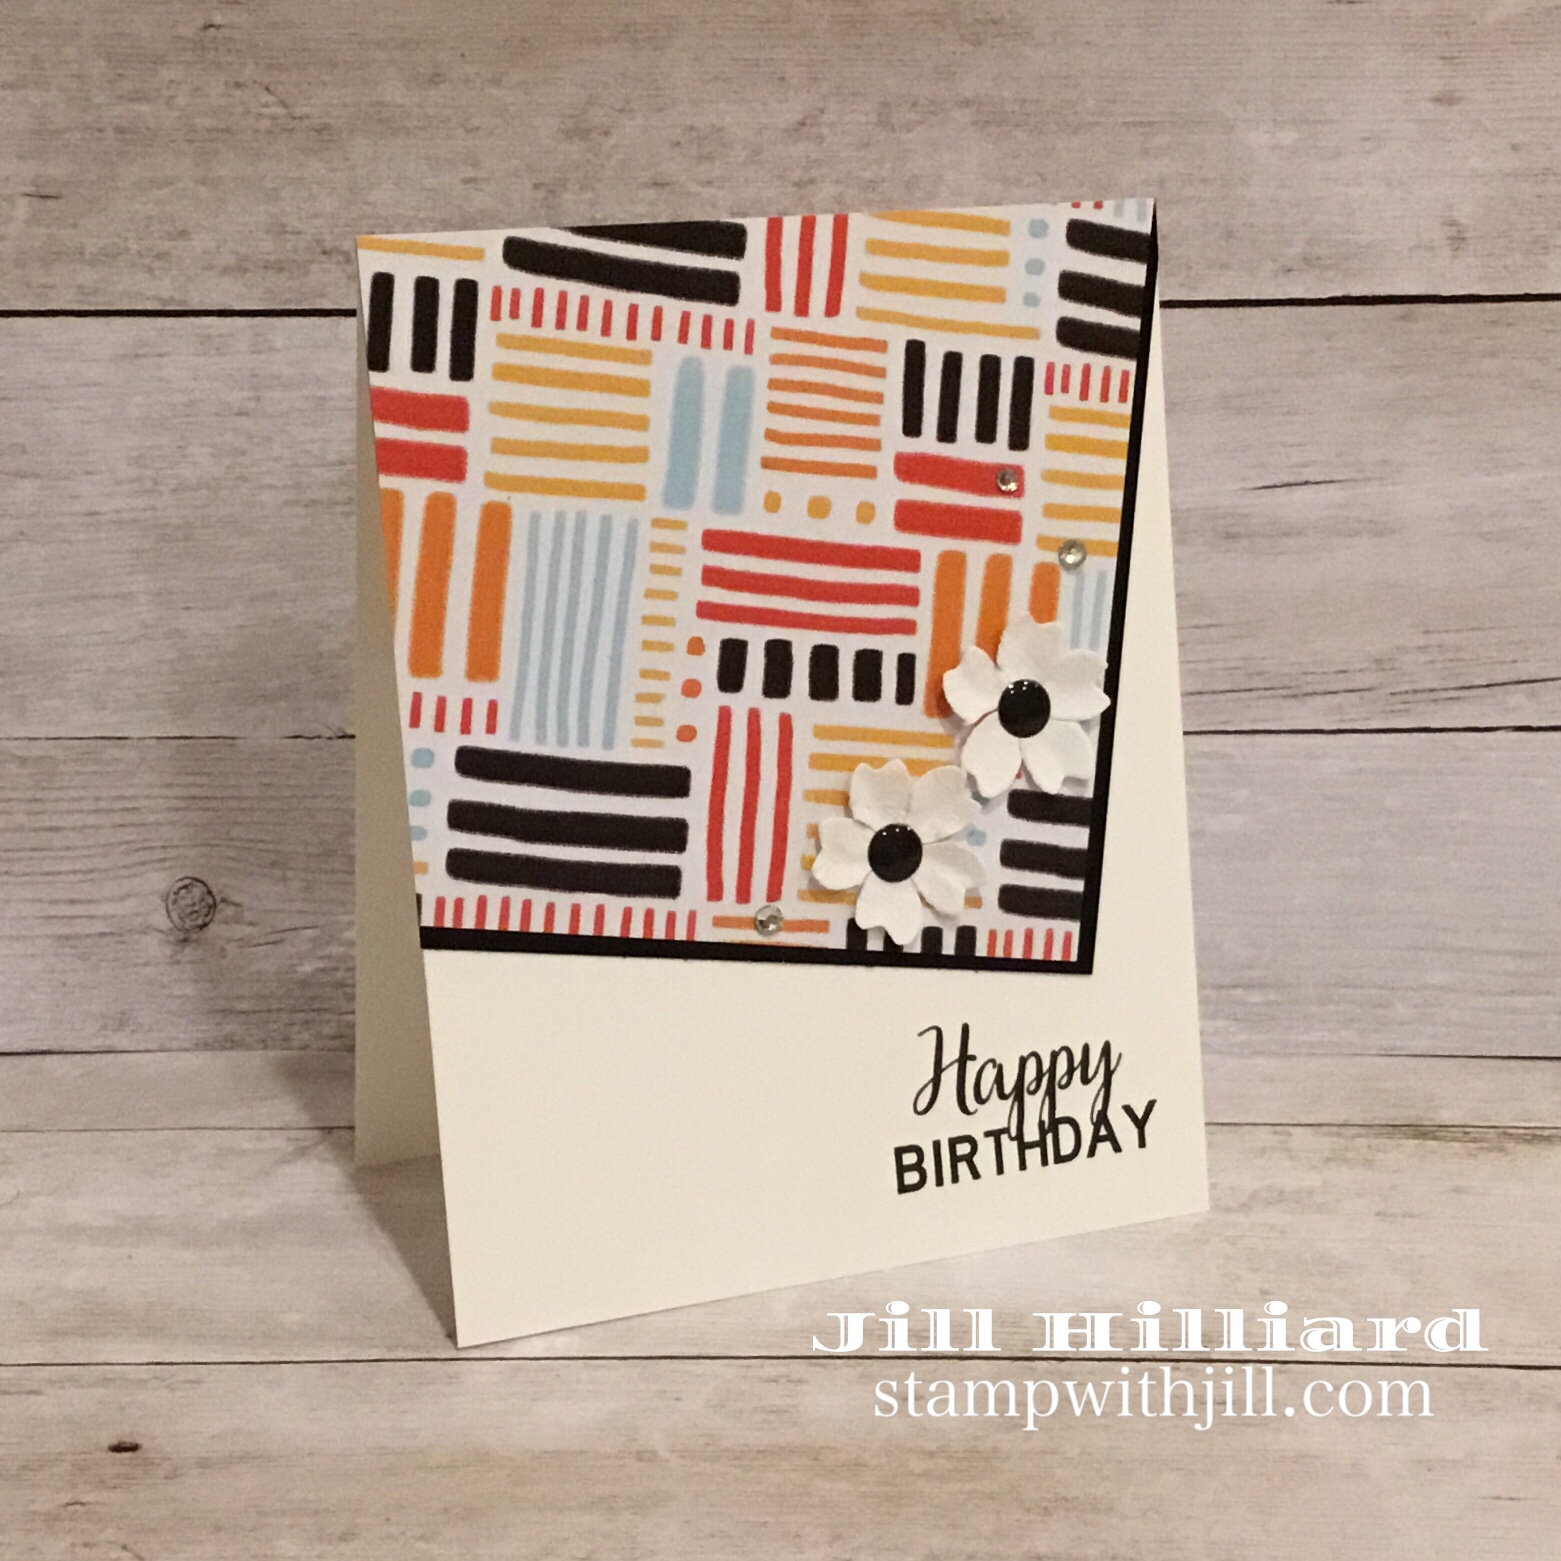 designer prints paper, fun stampers journey